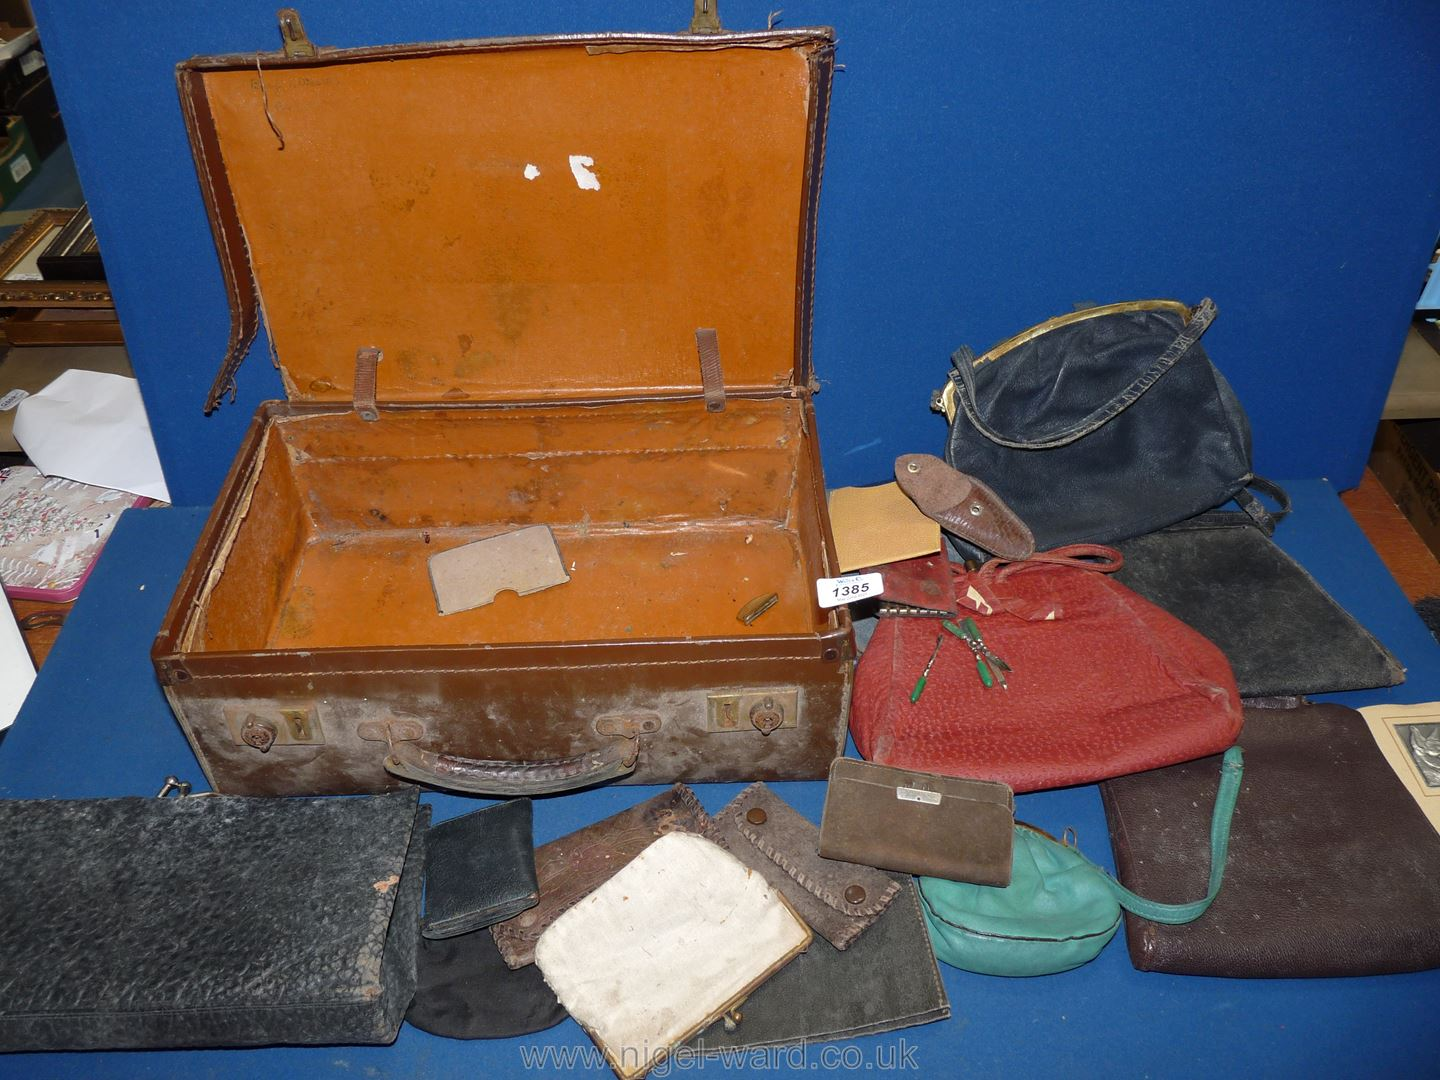 A vintage case of bags and purses